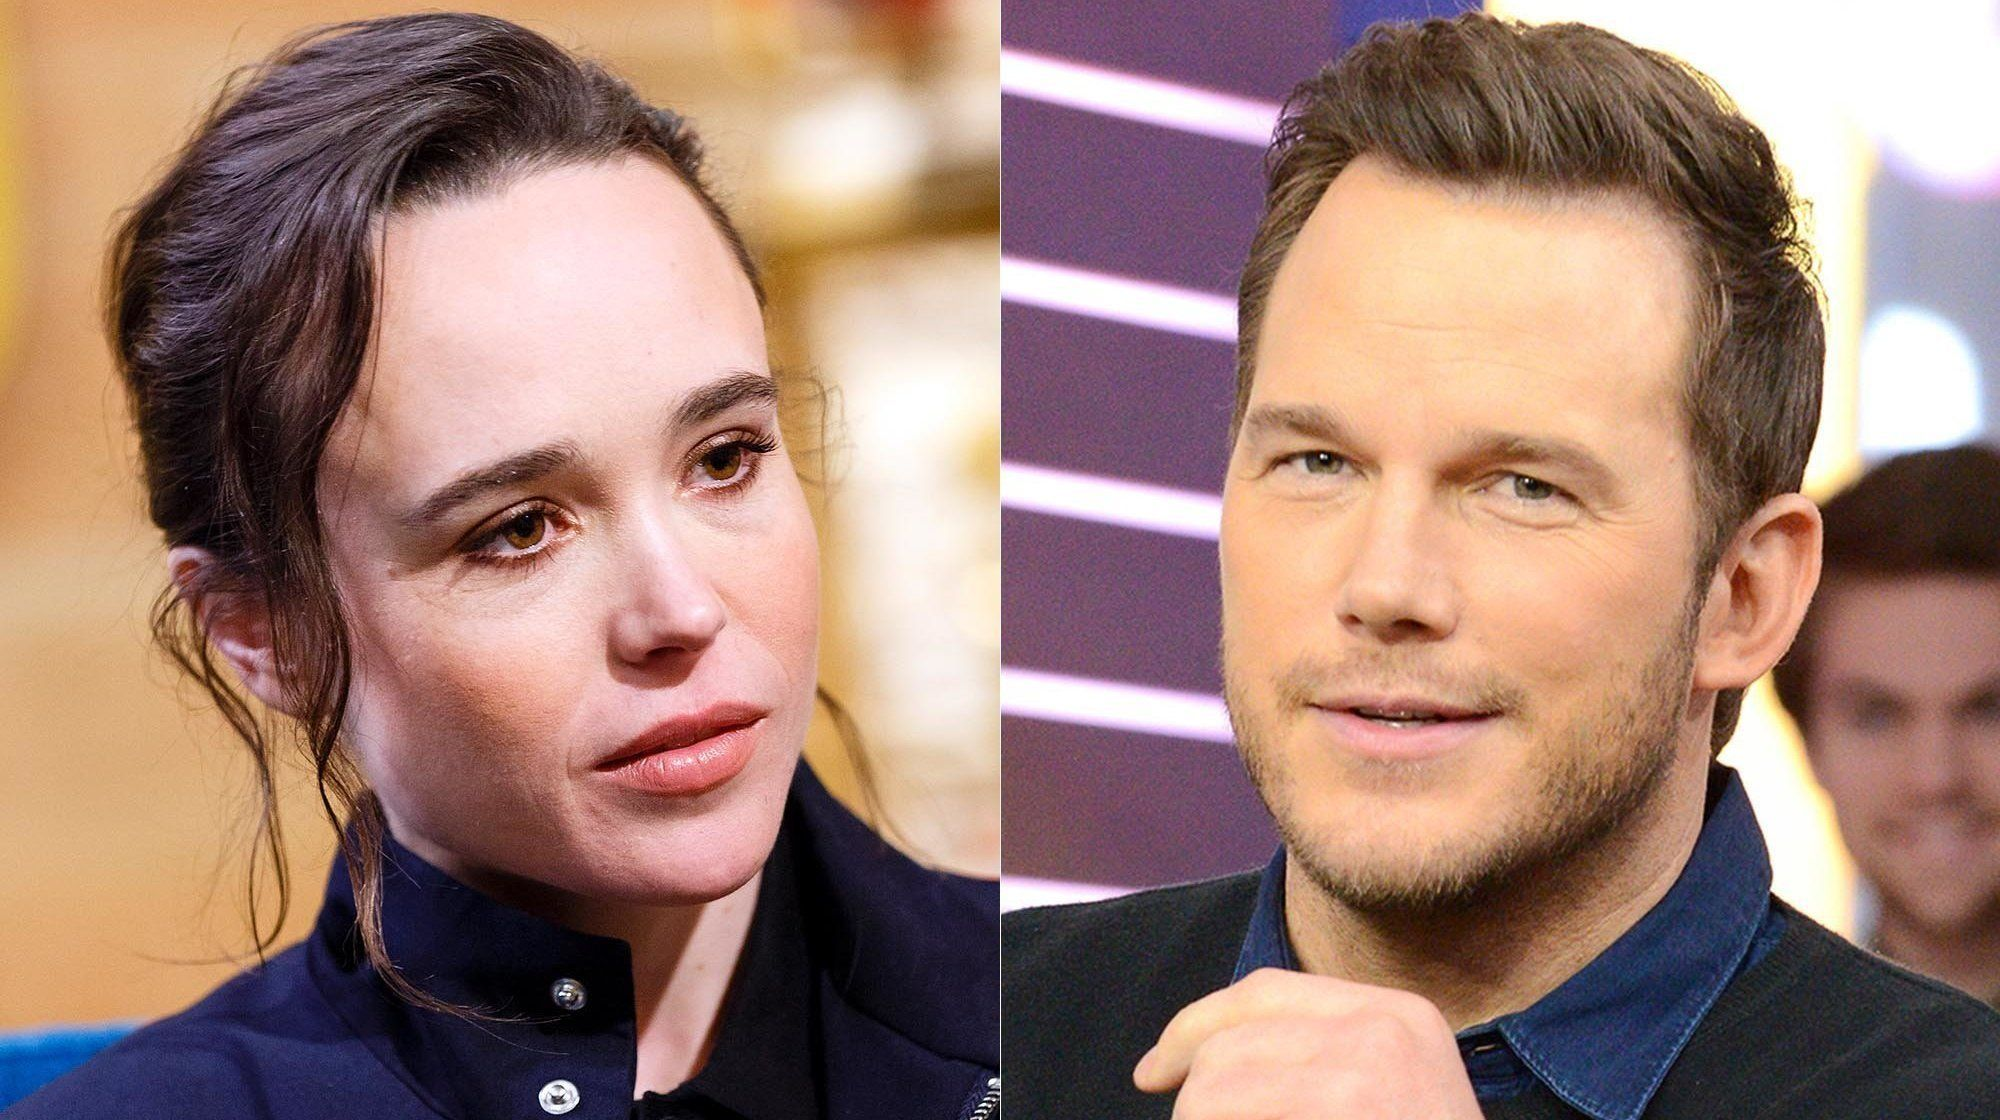 Chris Pratt Responds To Ellen Page's Claim His Church Is 'Infamously